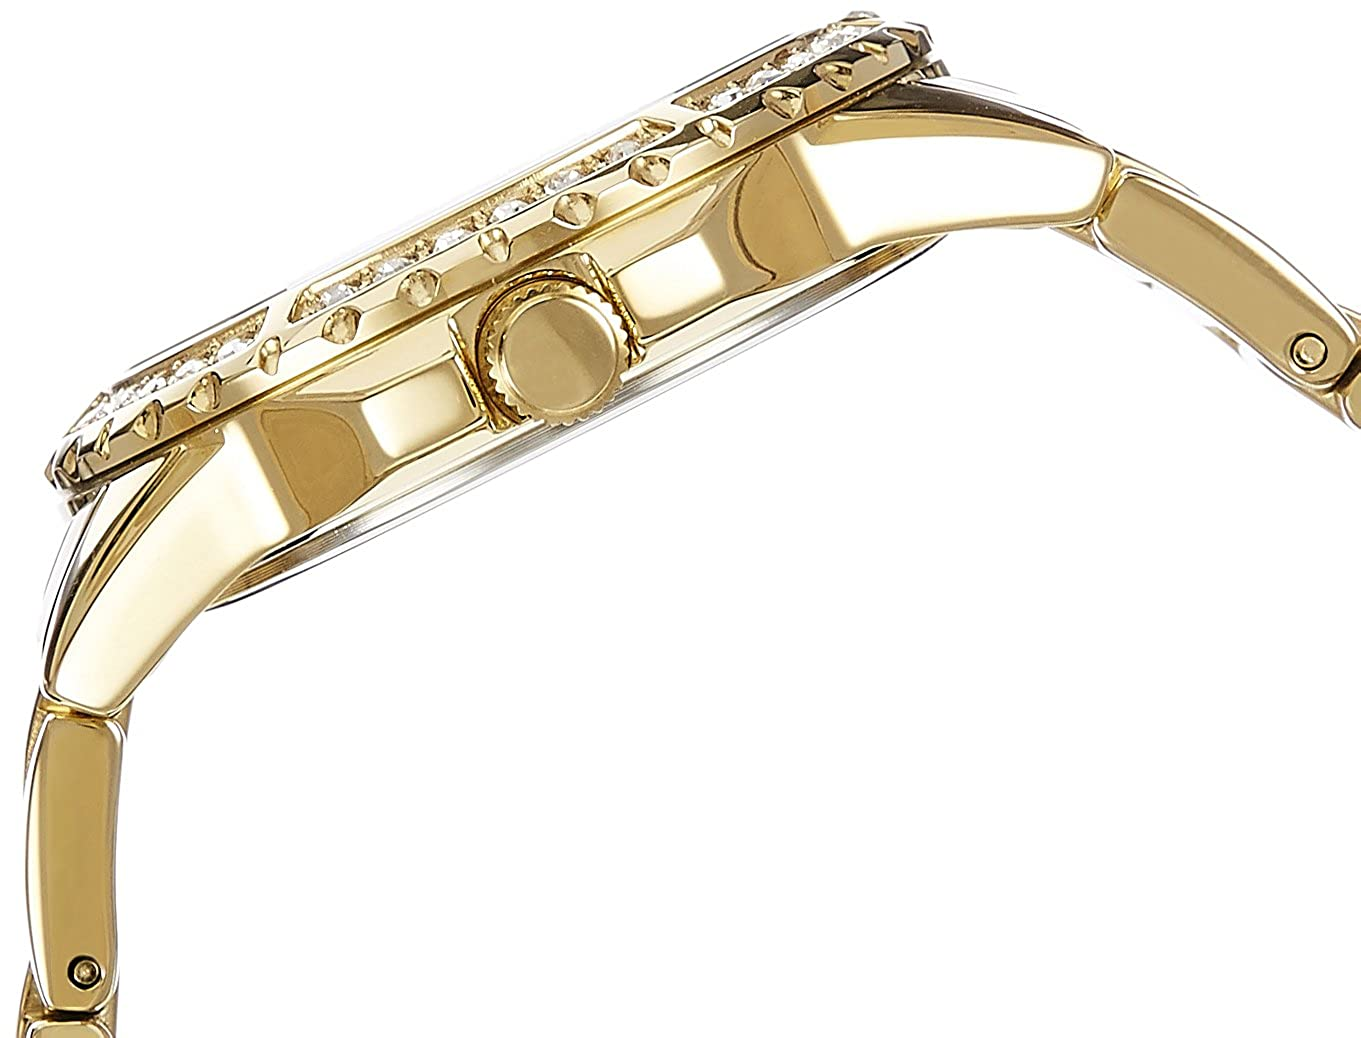 Amazon.com: Guess Womens Quartz Watch with Gold Dial Analogue Display and Gold Stainless Steel Bracelet W0705L2: GUESS: Watches